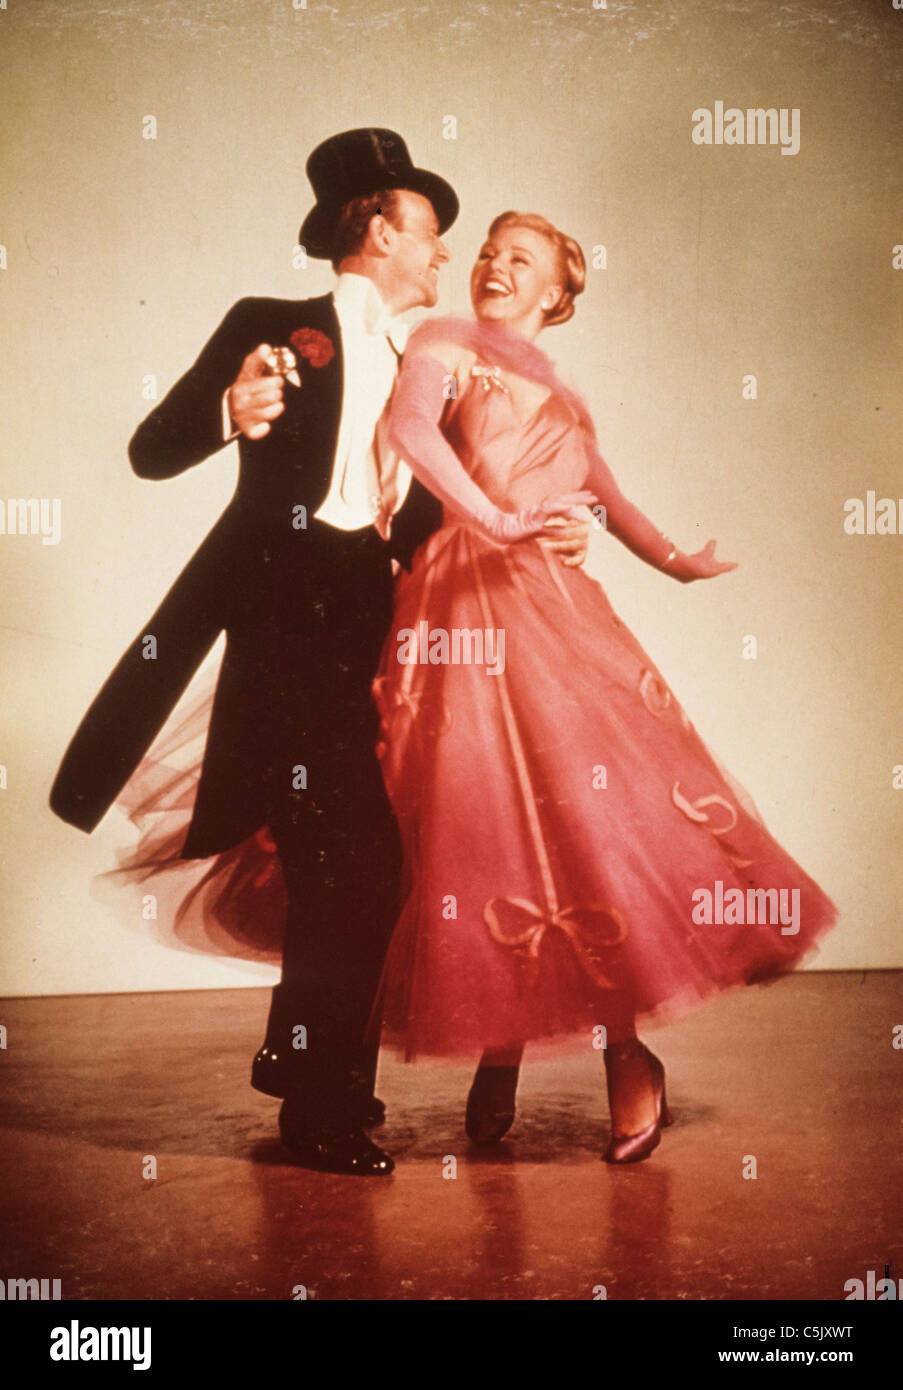 Fred Astaire And Ginger Rogers Stock Photo 37910260 Alamy